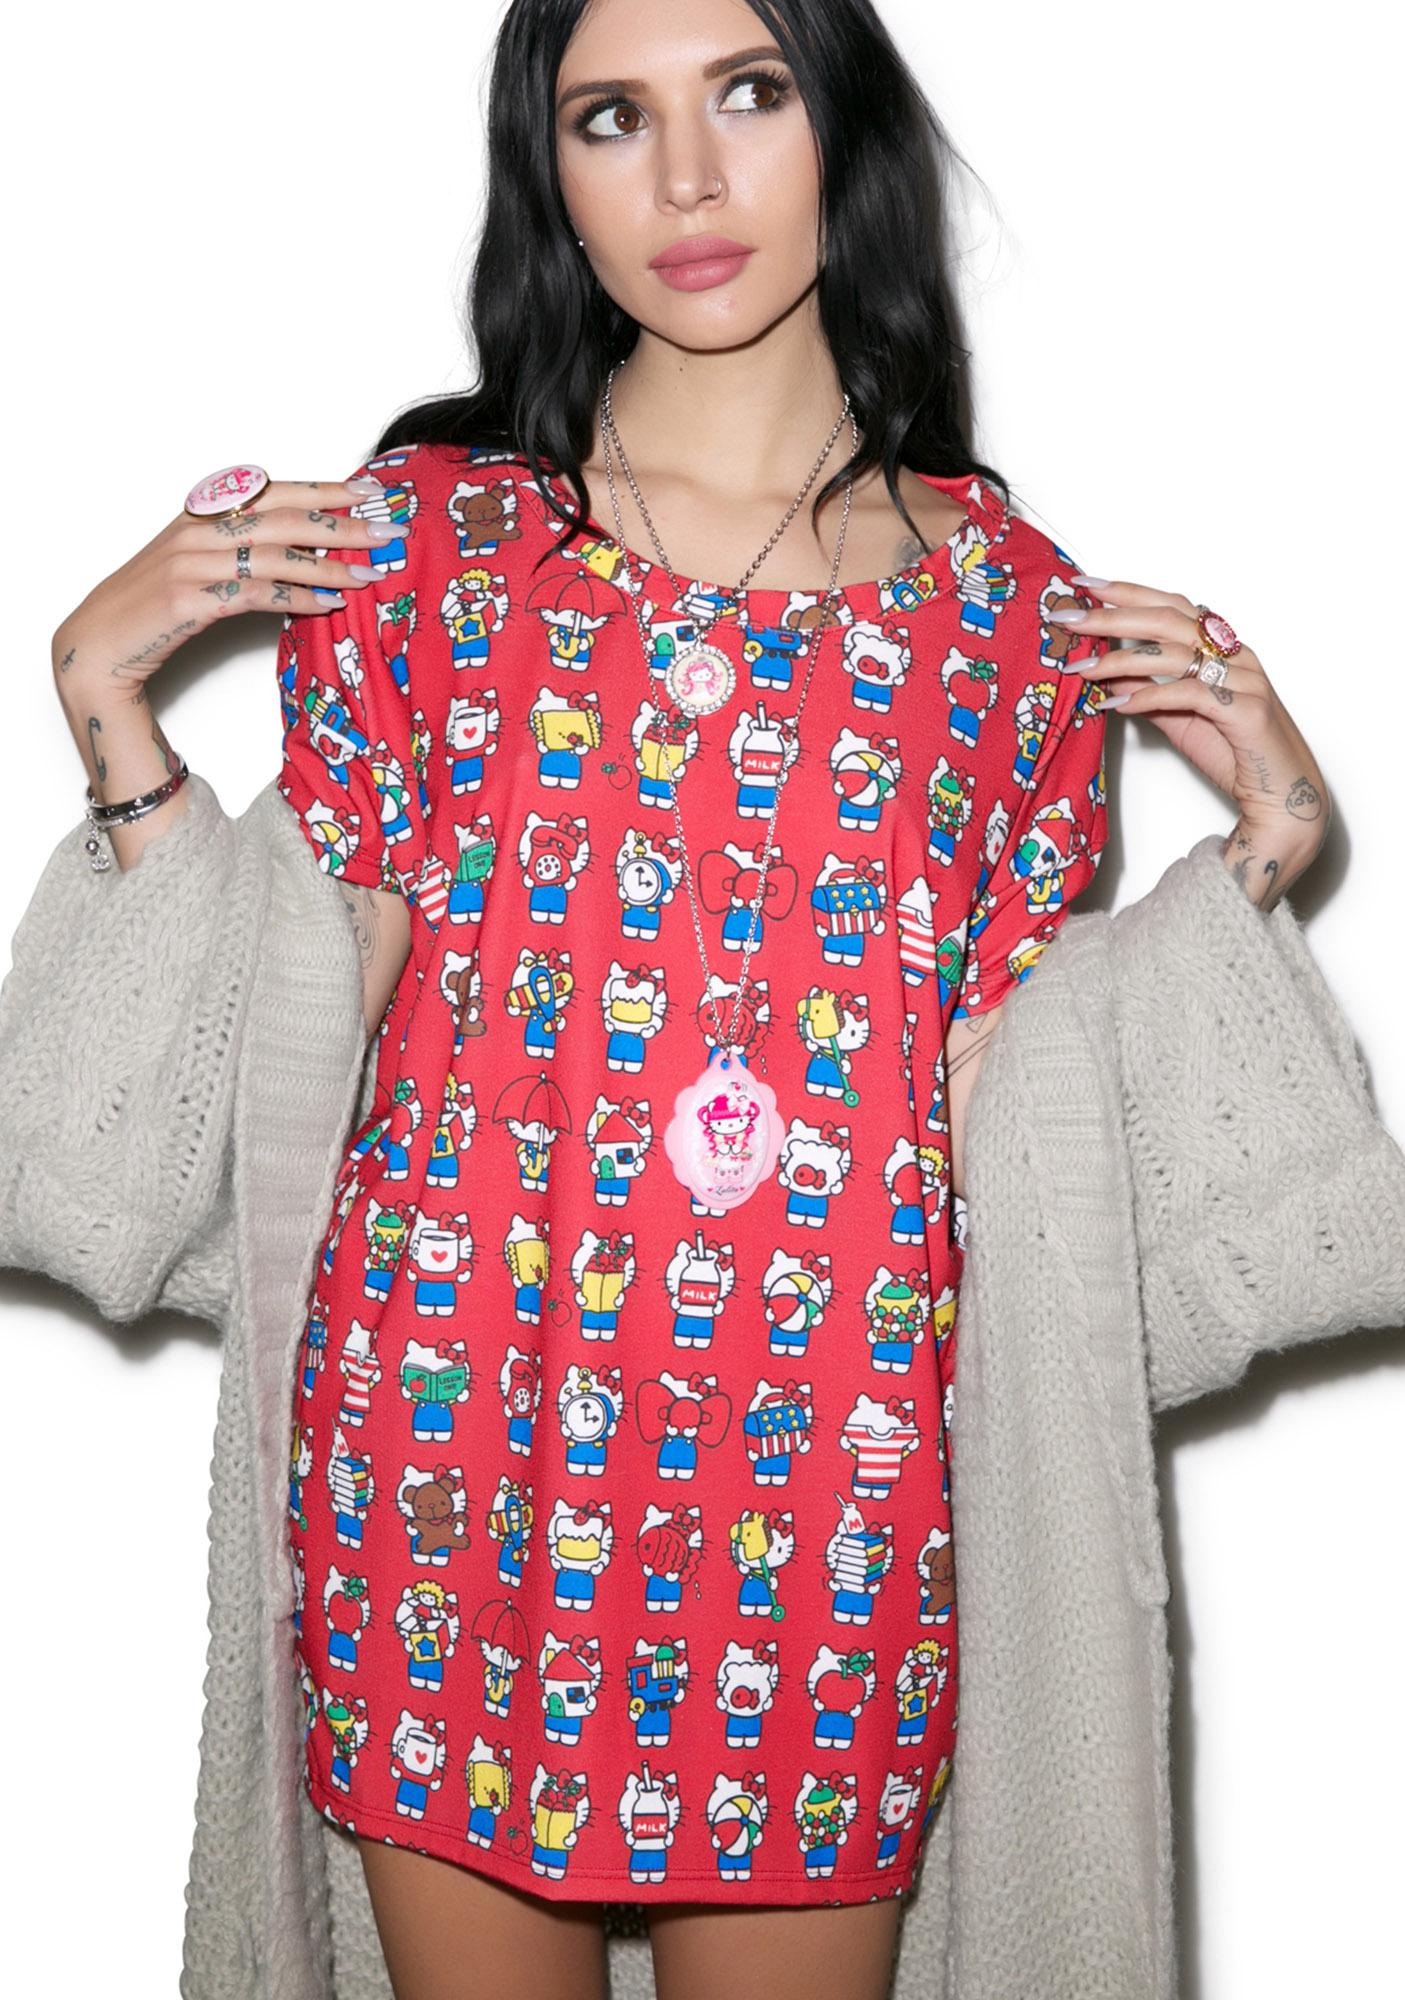 Japan L.A. Hello Kitty 40th Boxy Tee